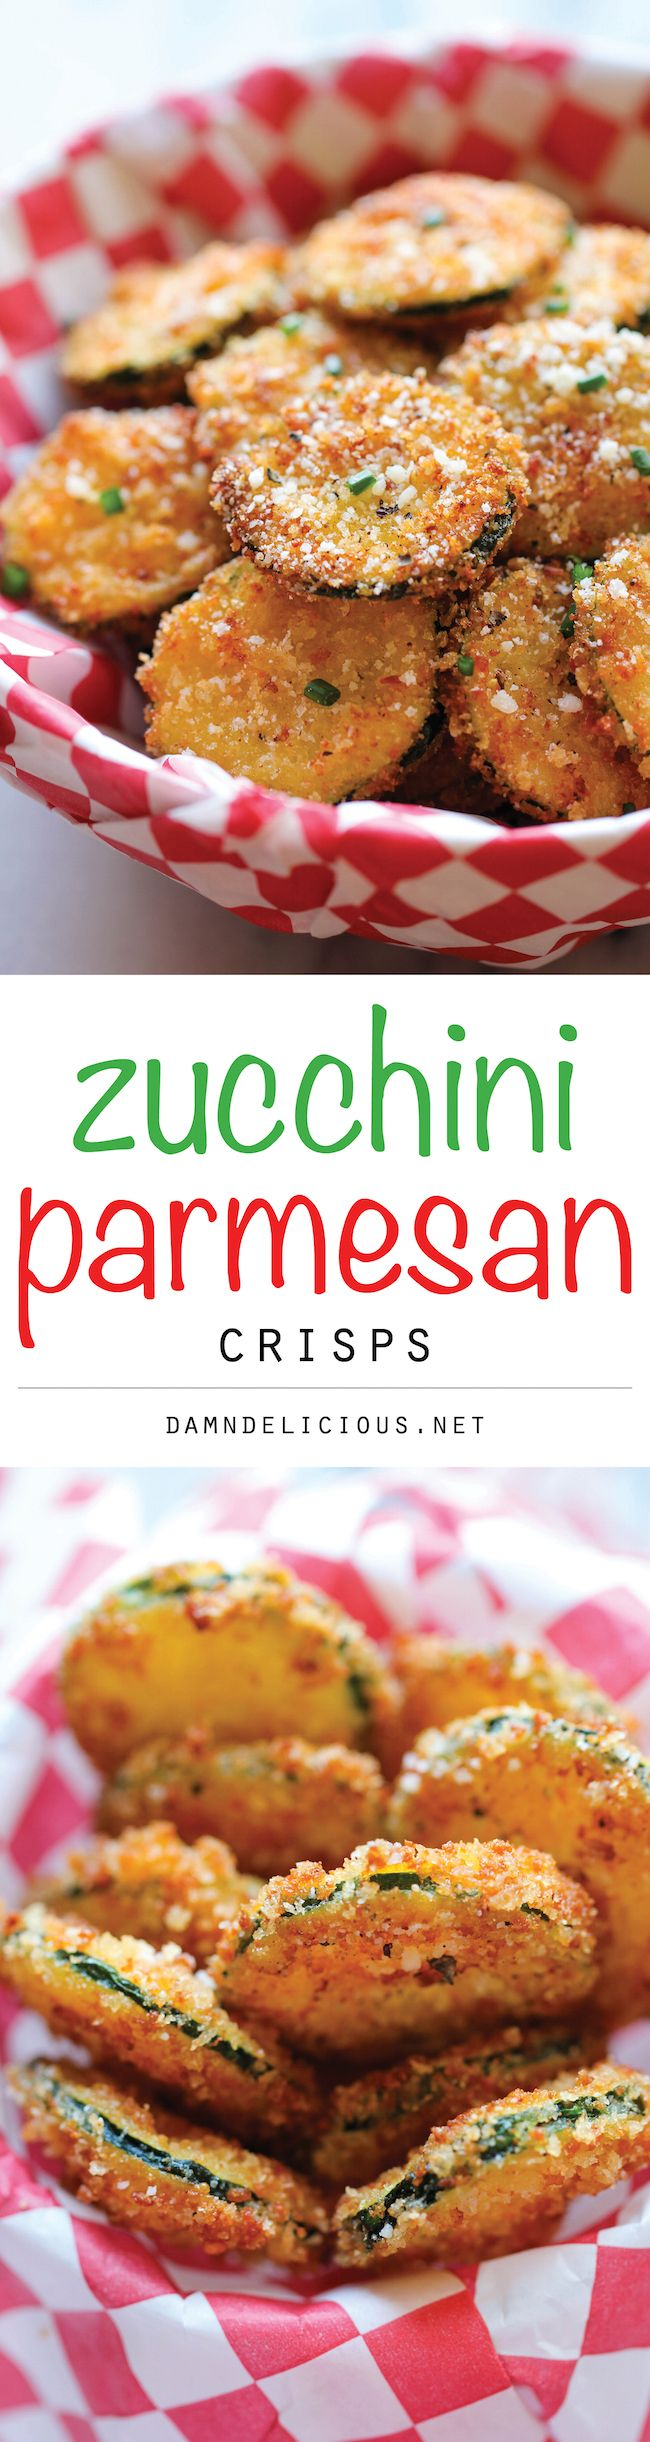 Zucchini Parmesan Crisps - A healthy snack that's incredibly crunchy, crispy and addicting - from Damn Delicious.